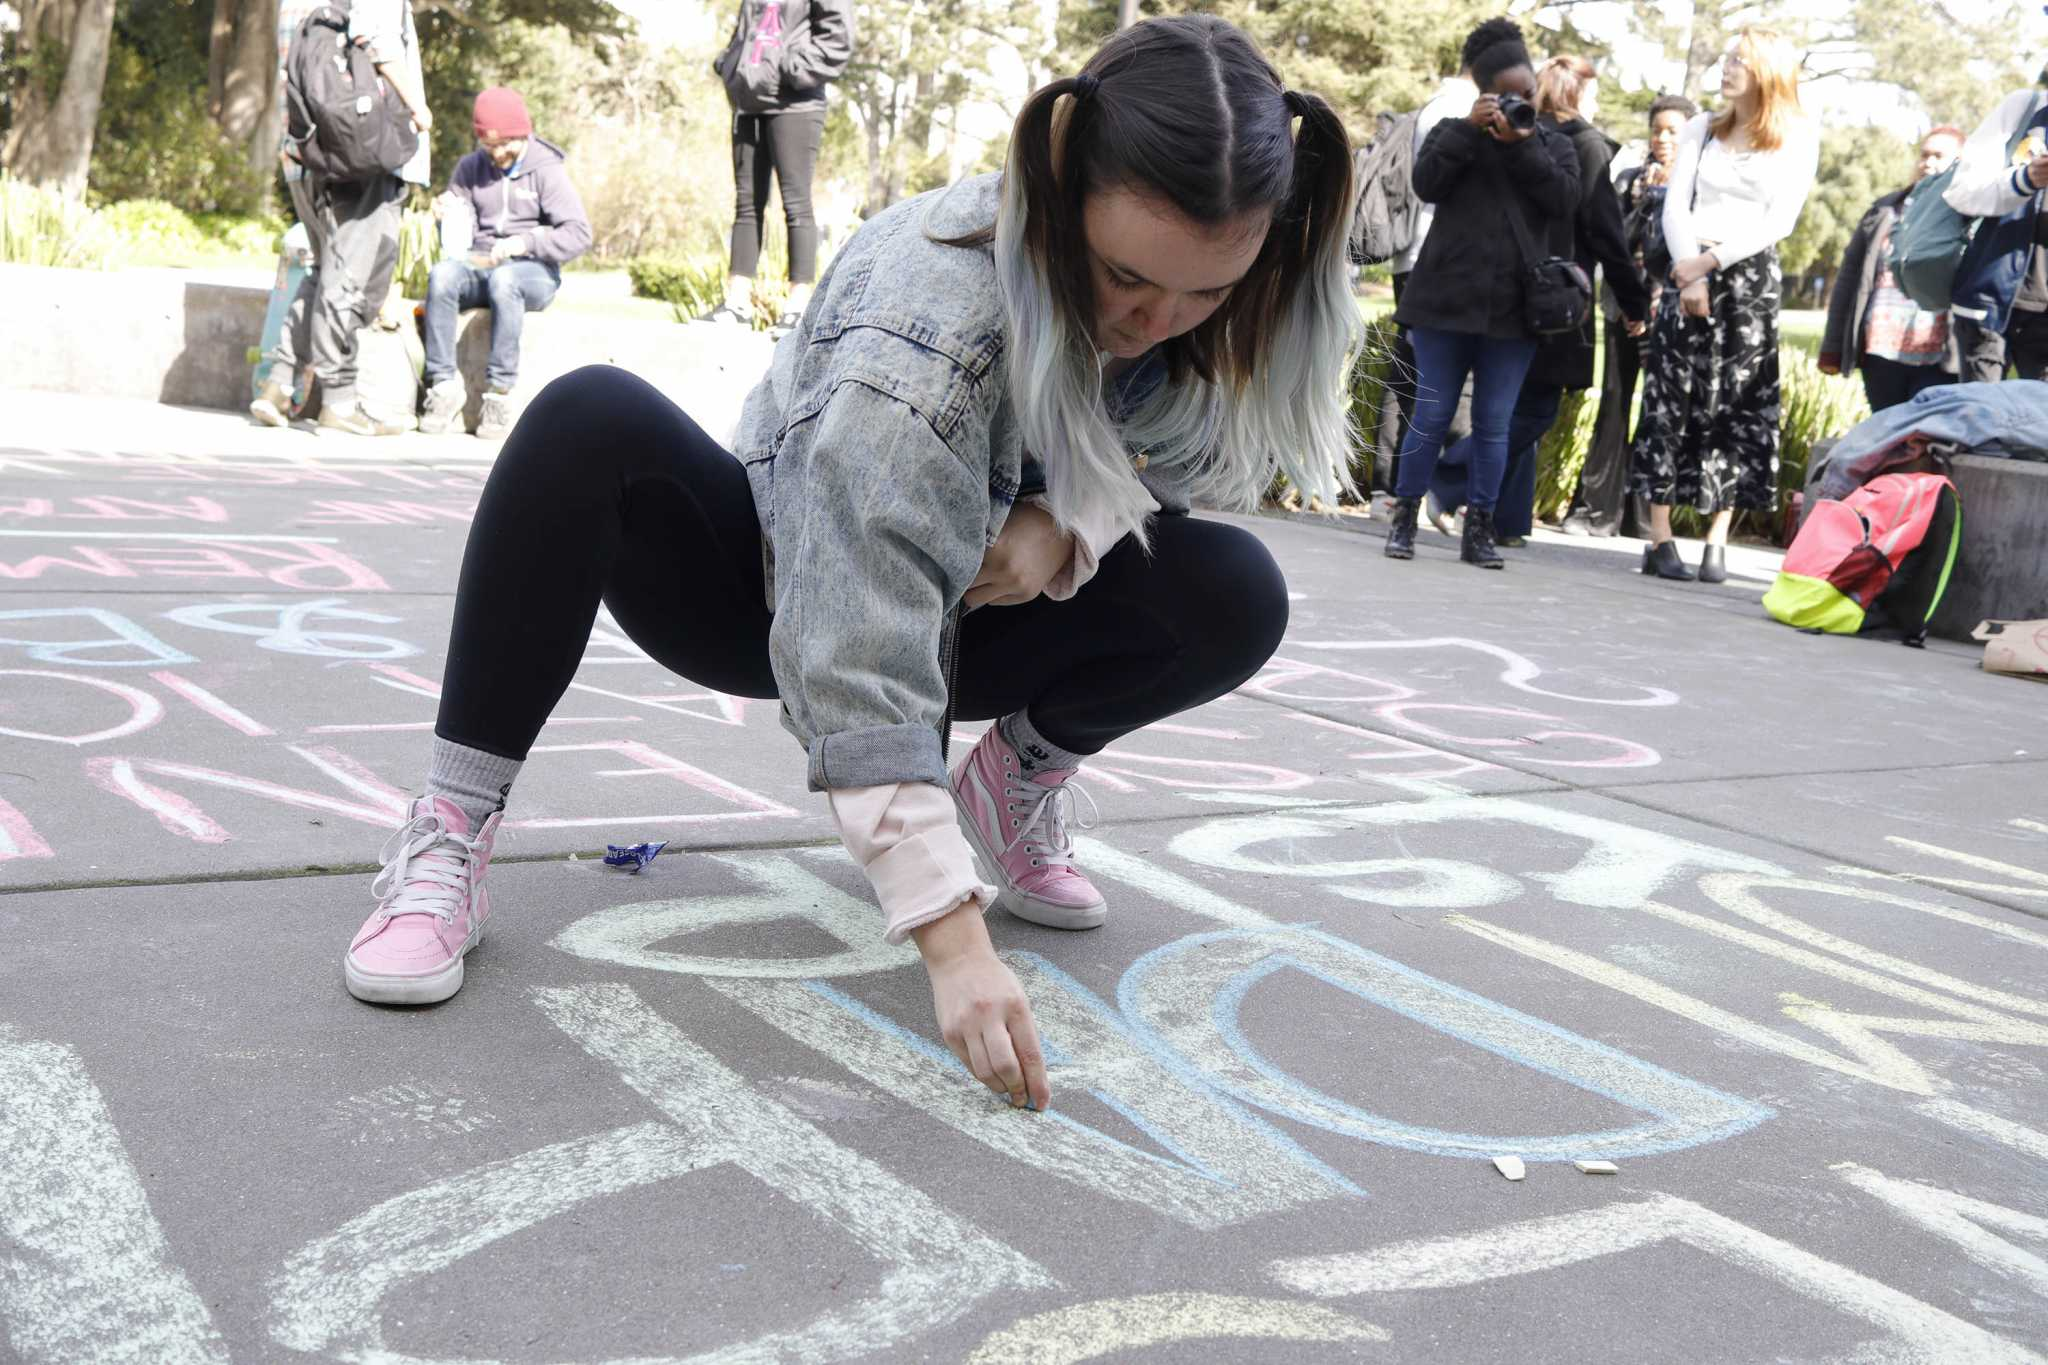 Julia Grace, 22, women and gender studies major, writes in chalk in front of the Wells Fargo and Bank of America ATM machines during the protest against the DAPL and KPL funding from the two banks. (Mason Rockfellow/Xpress)